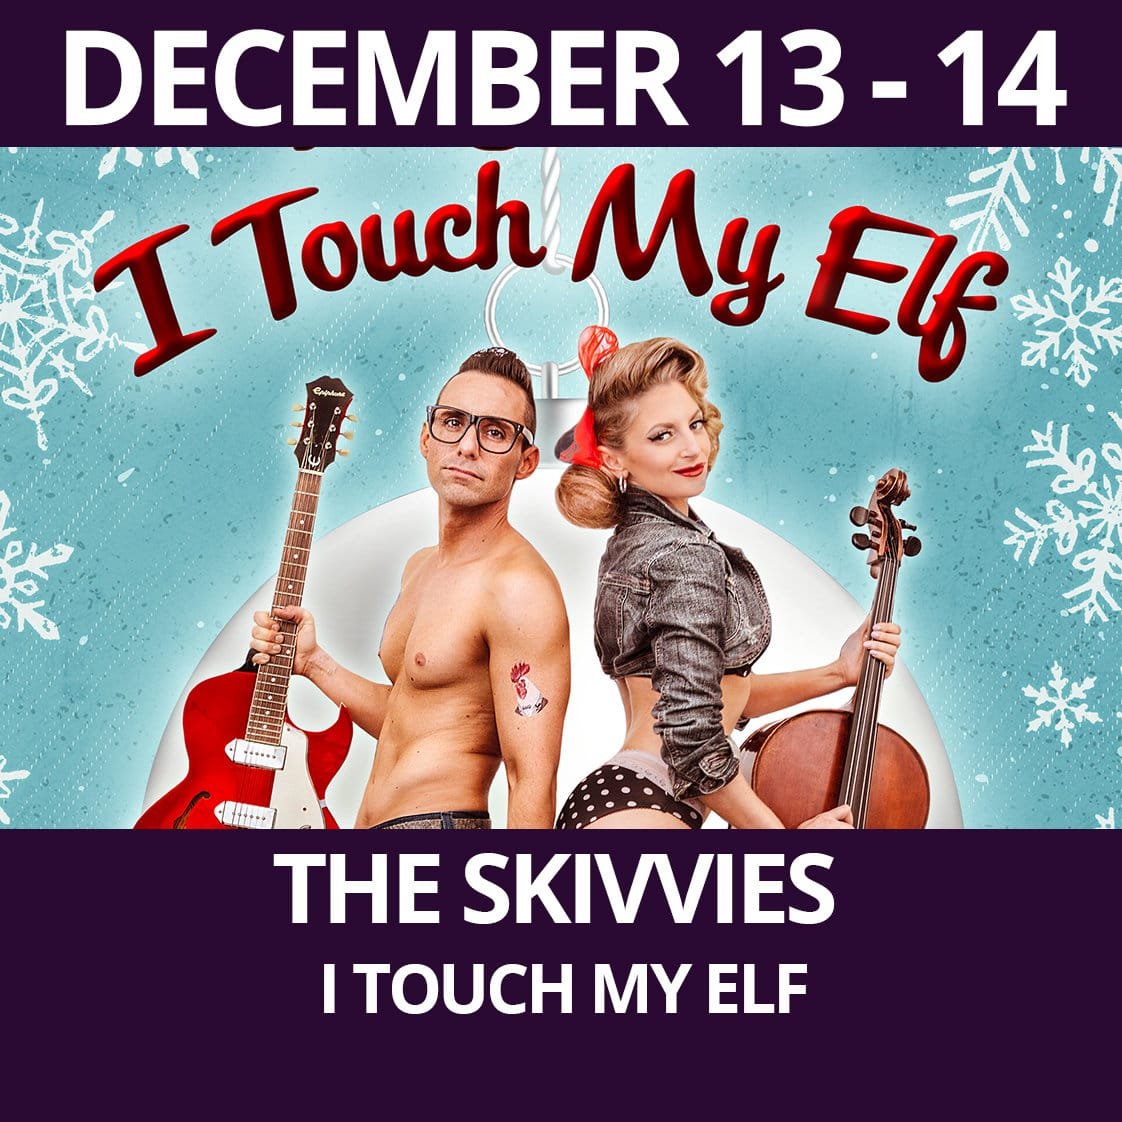 The Skivvies, I Touch My Elf Performance at The Purple Room Palm Springs